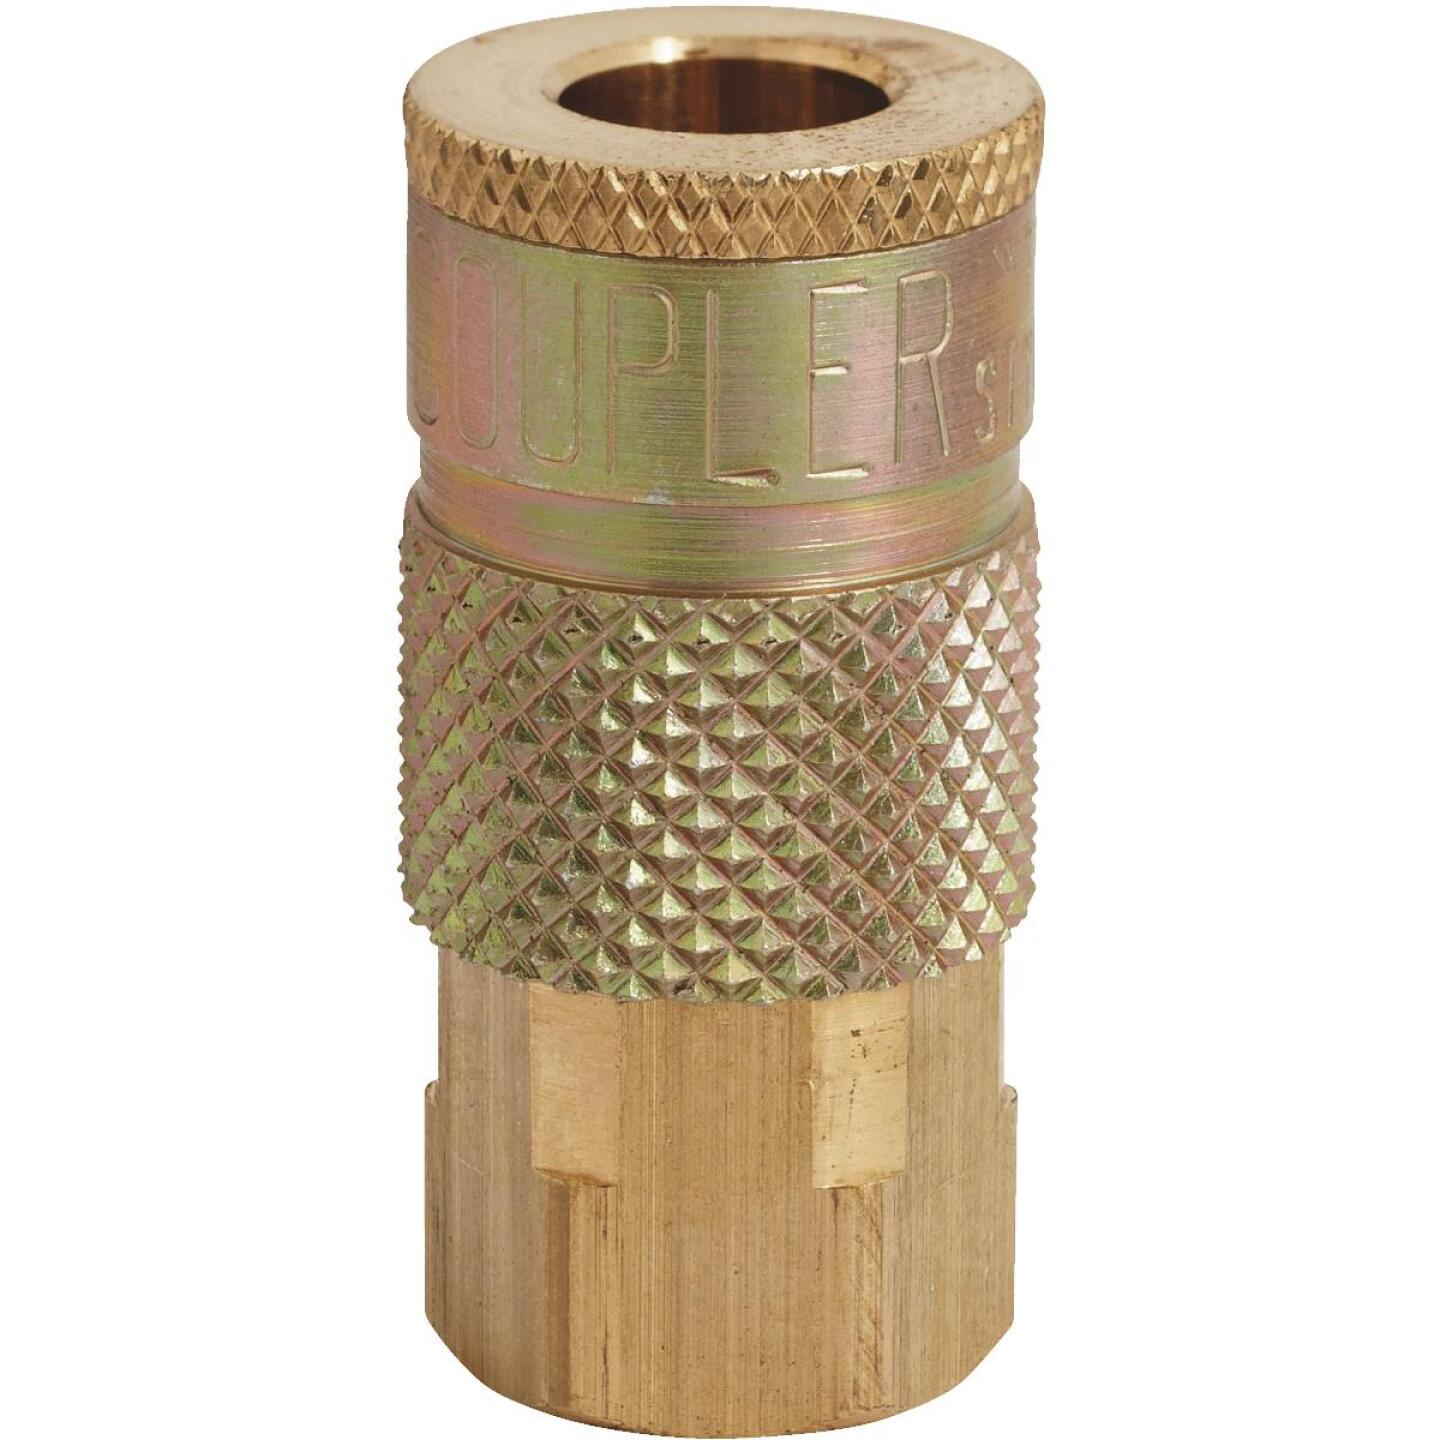 Milton Tru-Flate 1/4 In. FPT T-Style Brass Coupler Image 1